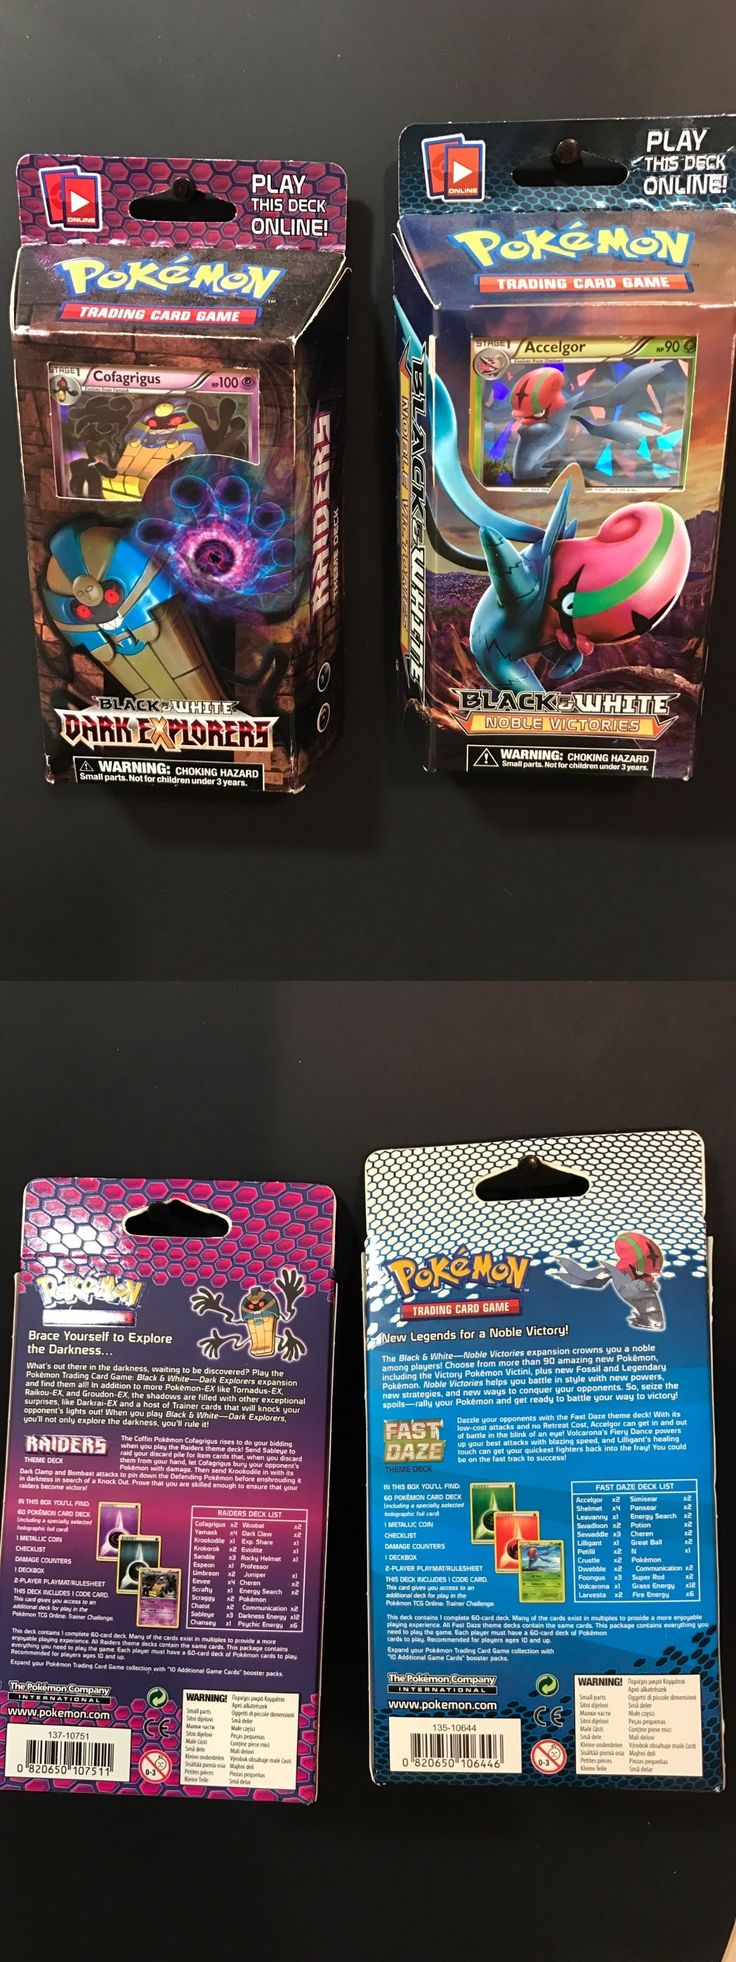 Pok mon Sealed Decks and Kits 183467: Pokemon Deck Lot Black And White Dark Explores And Noble Victories Lot -> BUY IT NOW ONLY: $39.99 on eBay!